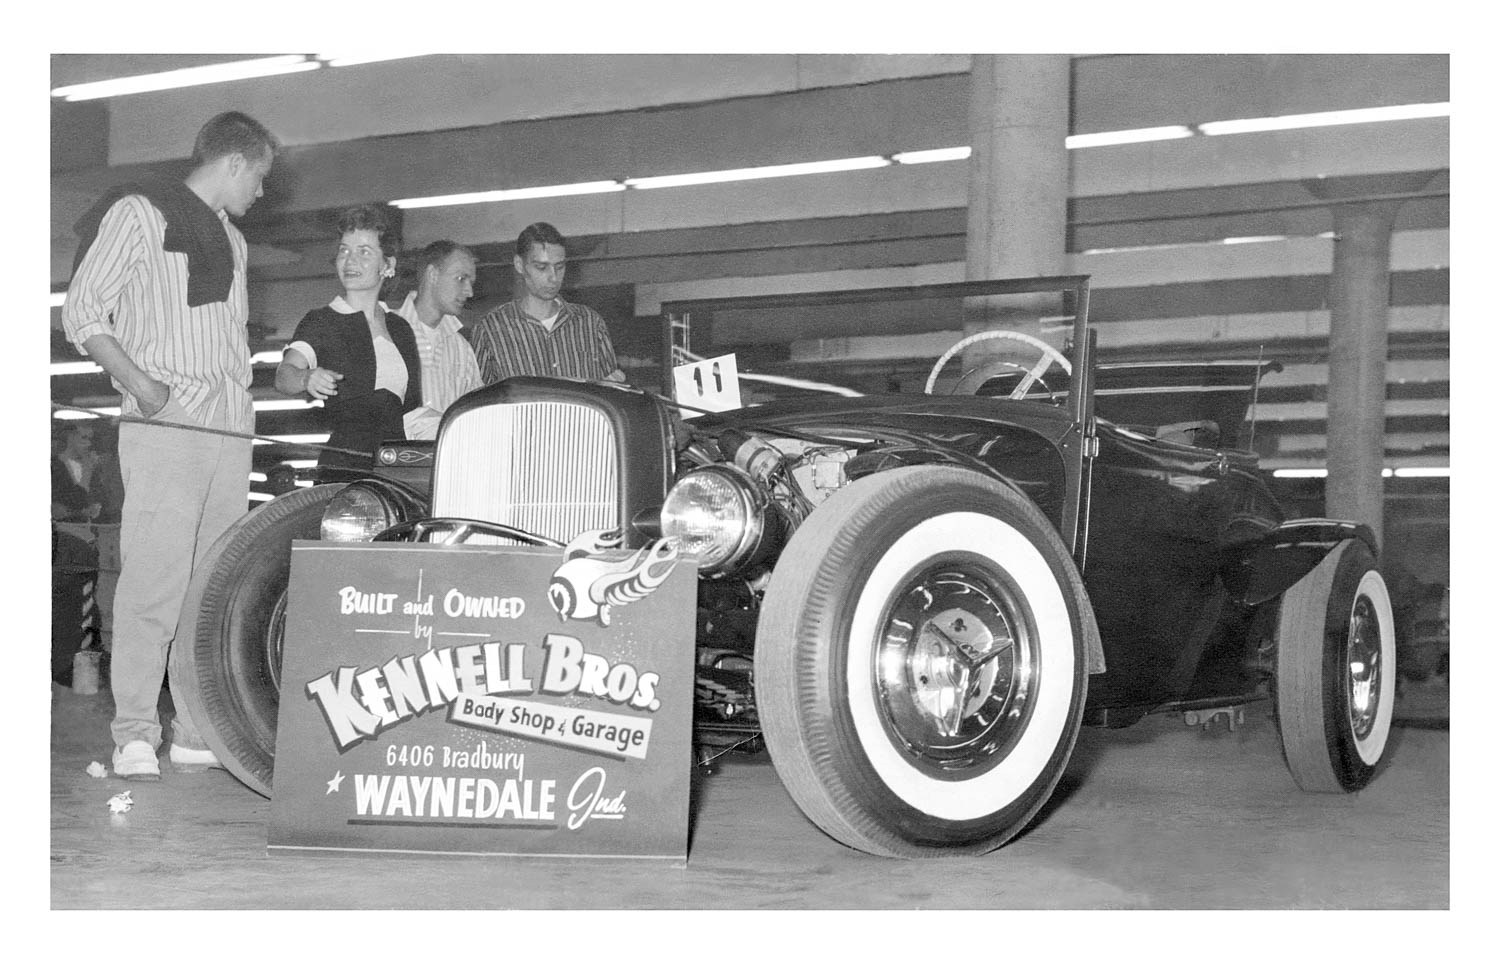 Kennell Bros. Hot rod